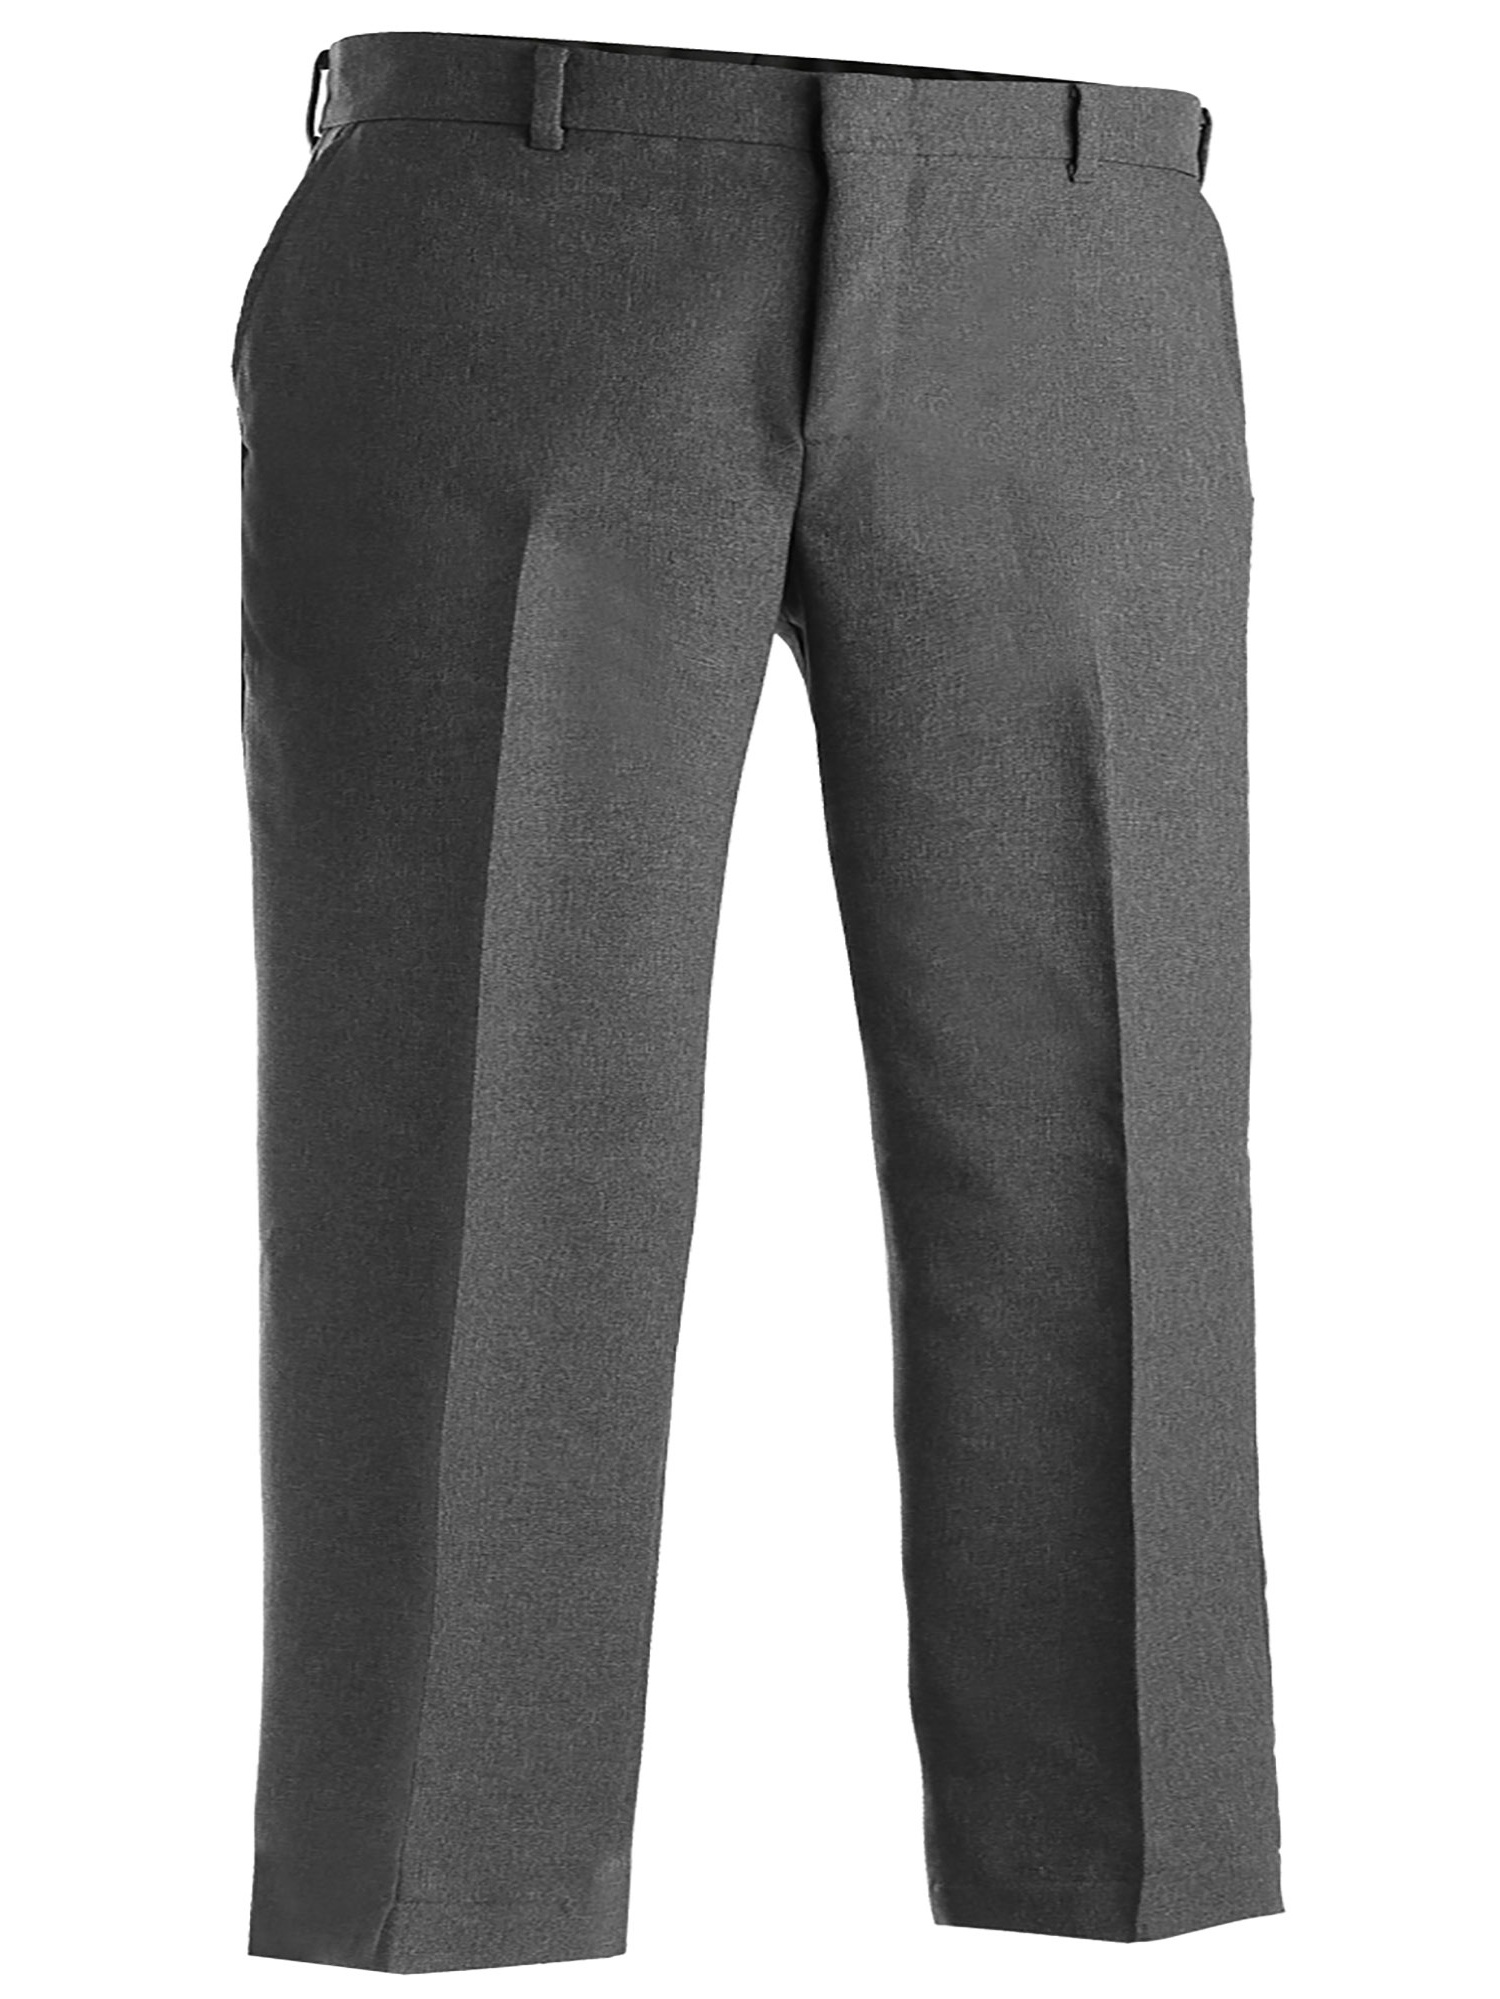 Edwards Garment Men's Classic Flat Front Security Pant, Style 2595